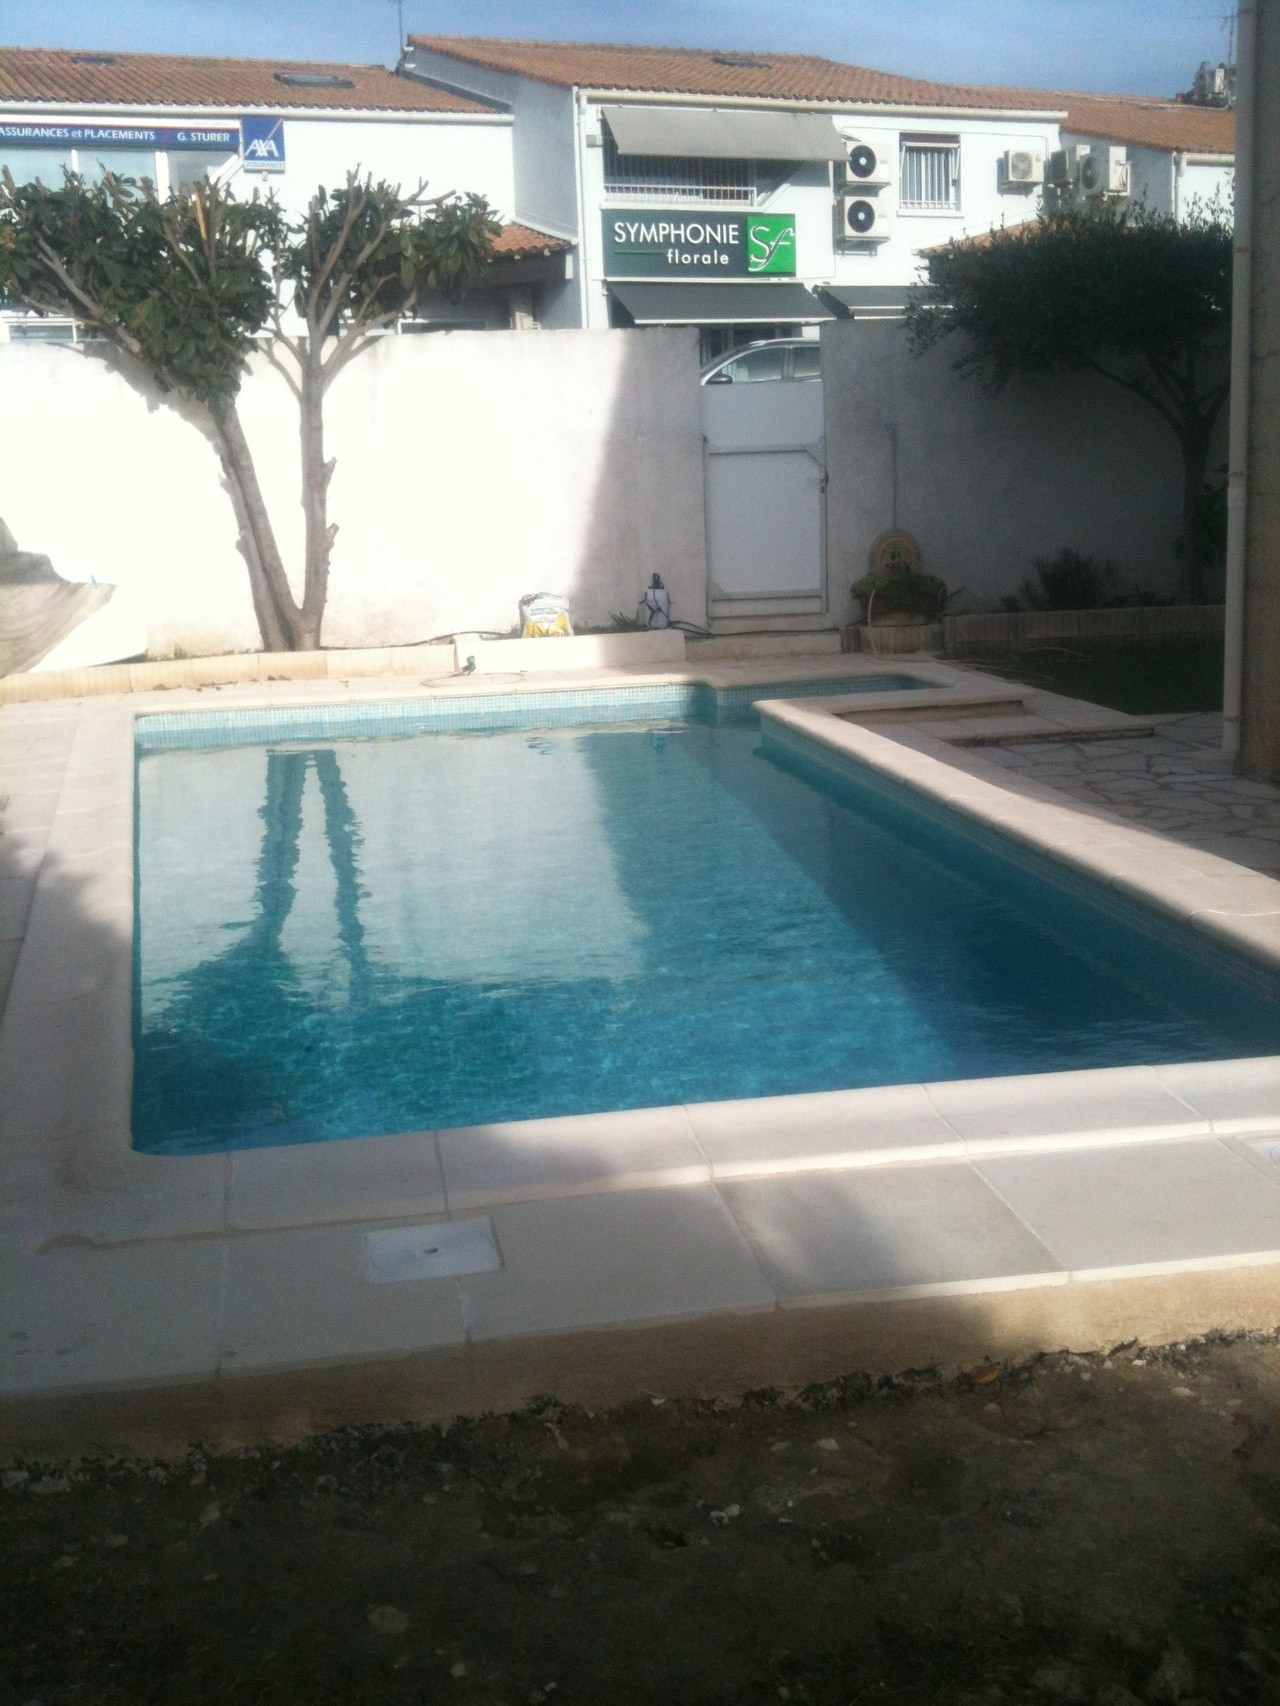 renovation de piscine a juvignac